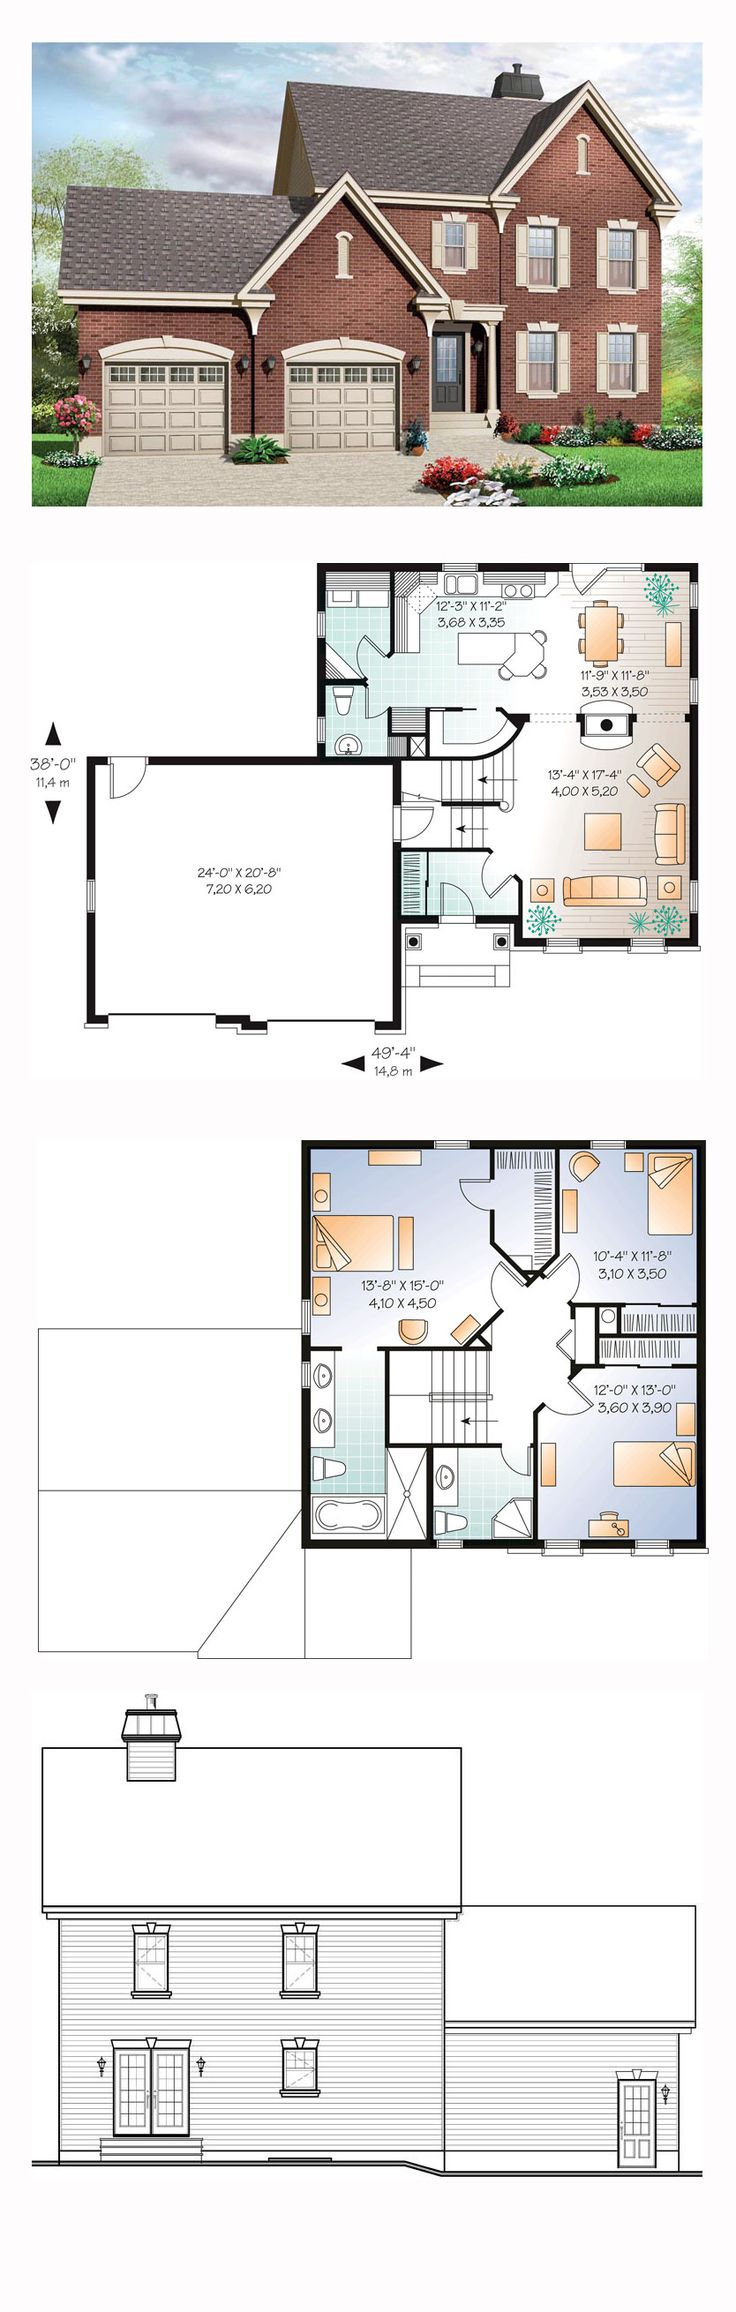 Colonial House Plan 76279 | Total Living Area: 1807 sq. ft., 3 bedrooms and 2.5 bathrooms. #colonialhome